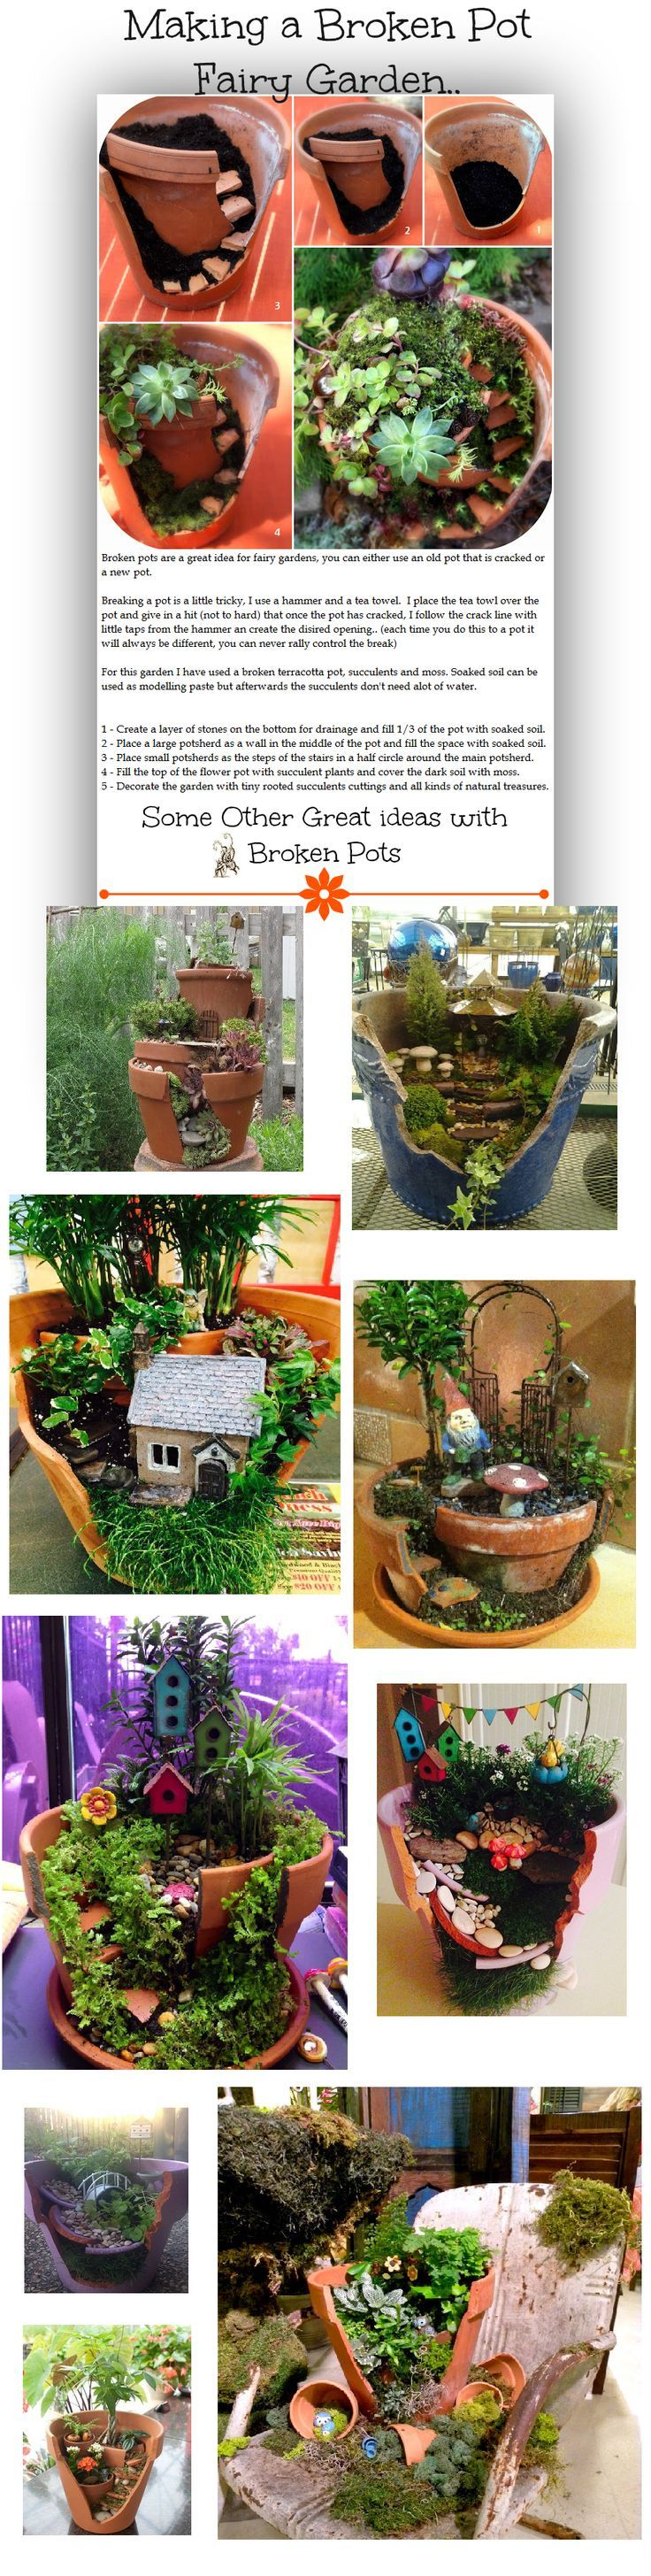 Making a Broken Pot Fairy Garden